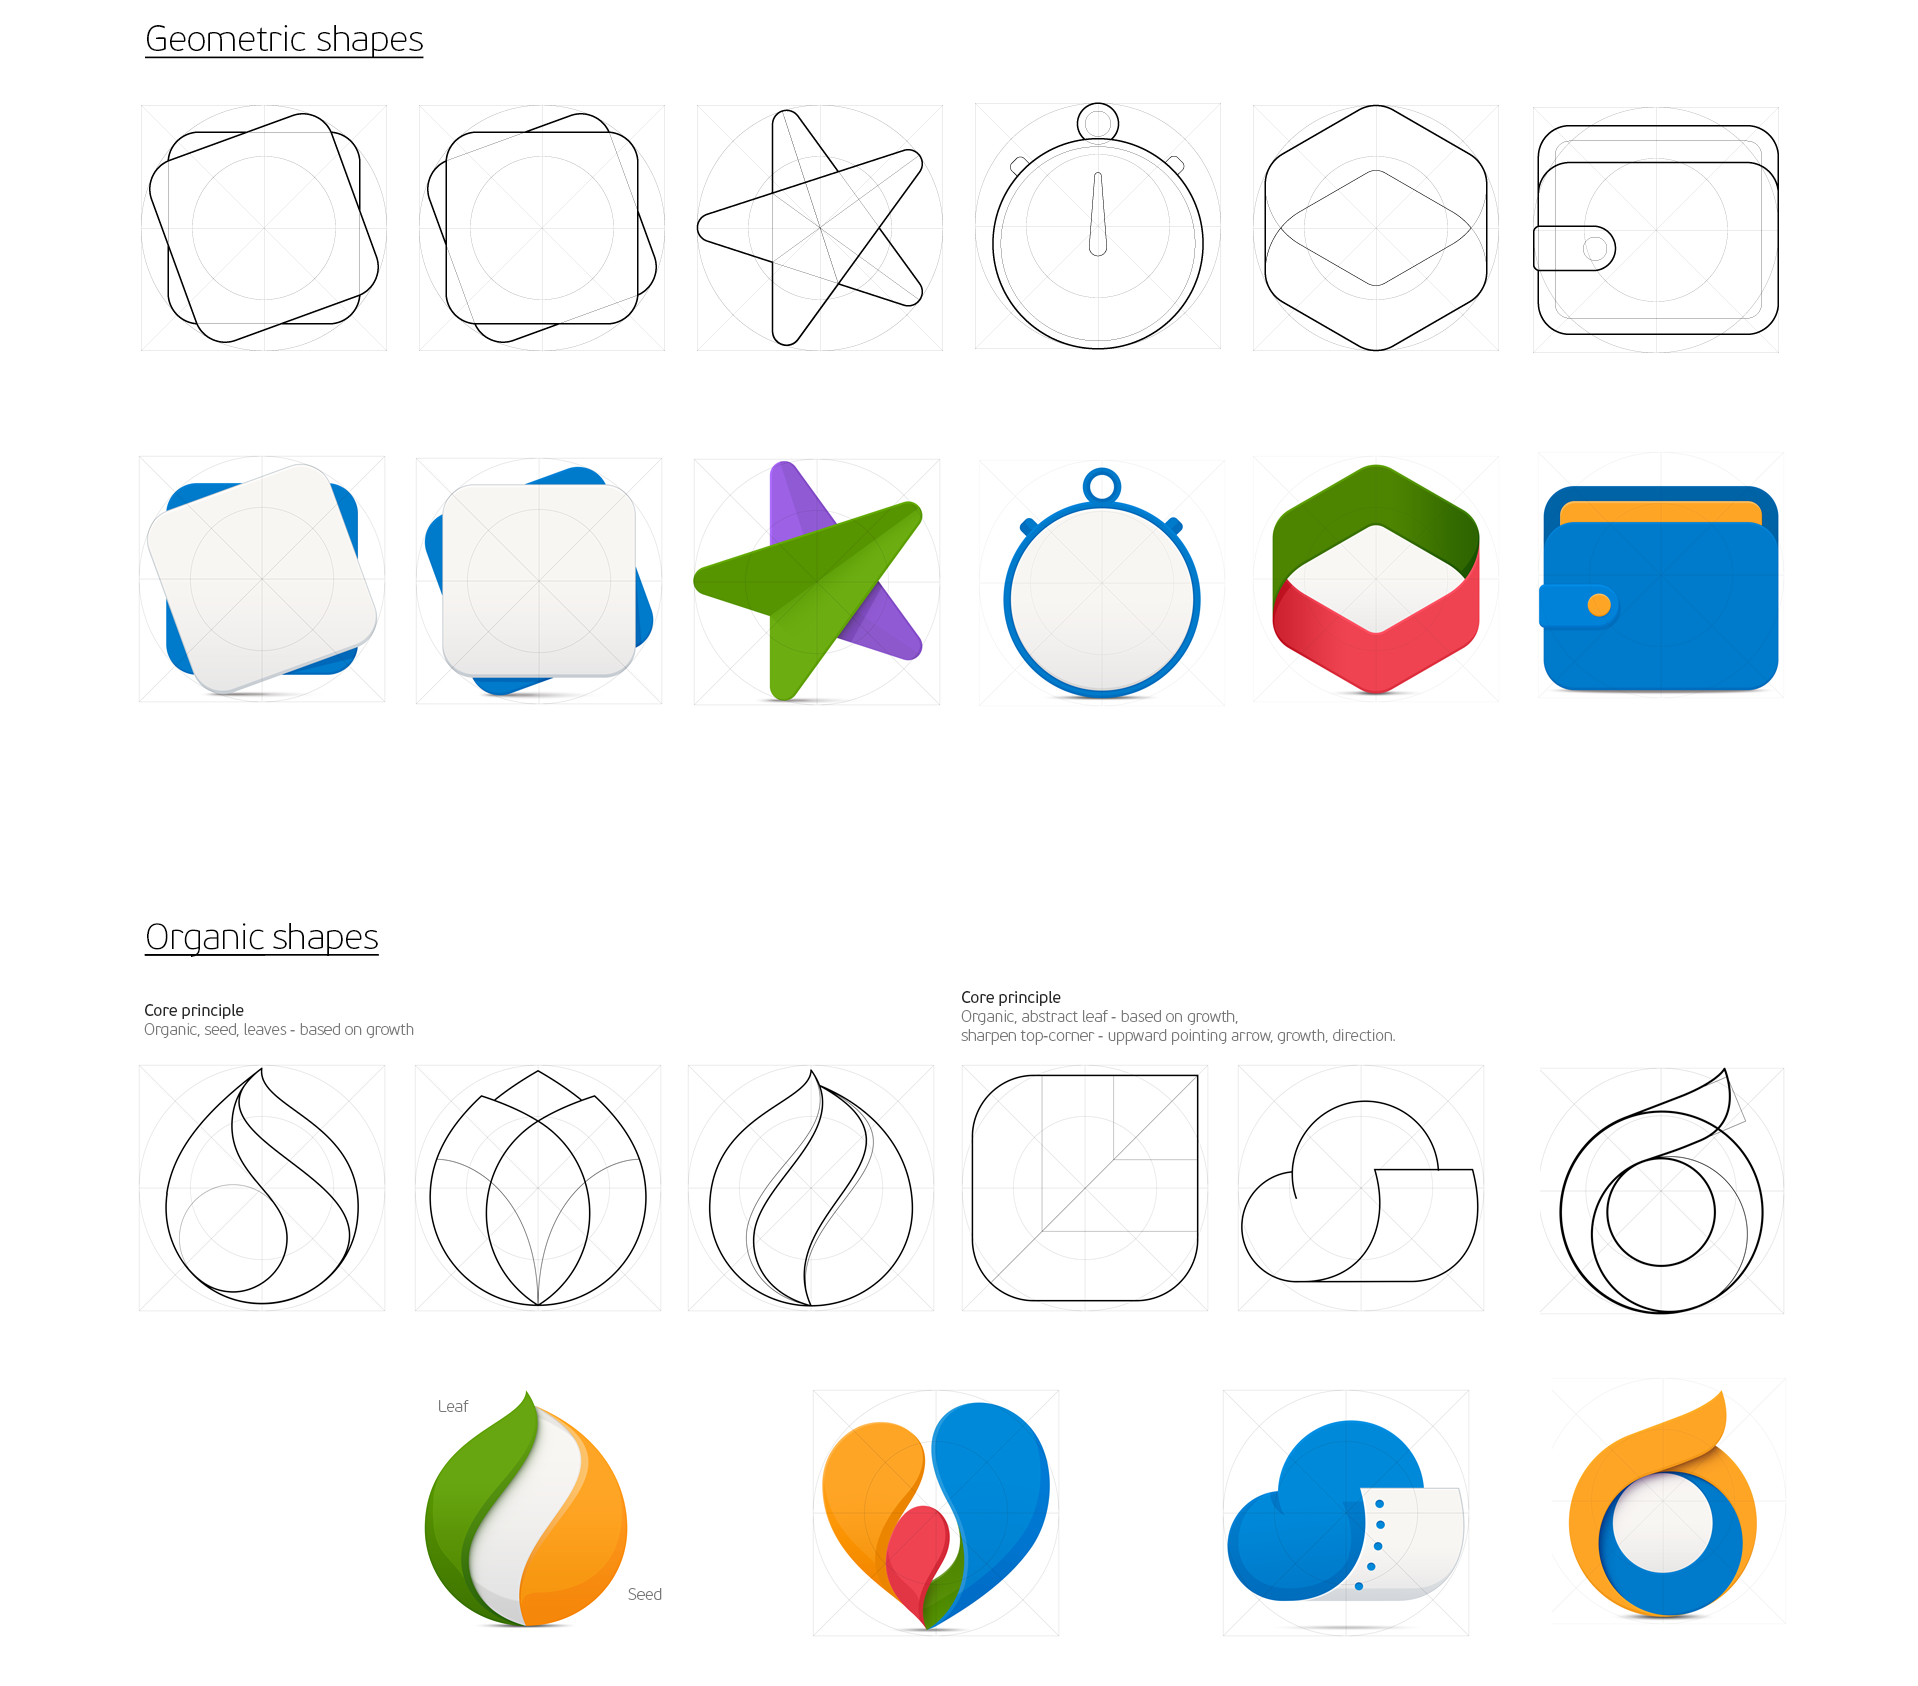 Examples of geometrical and organic shapes